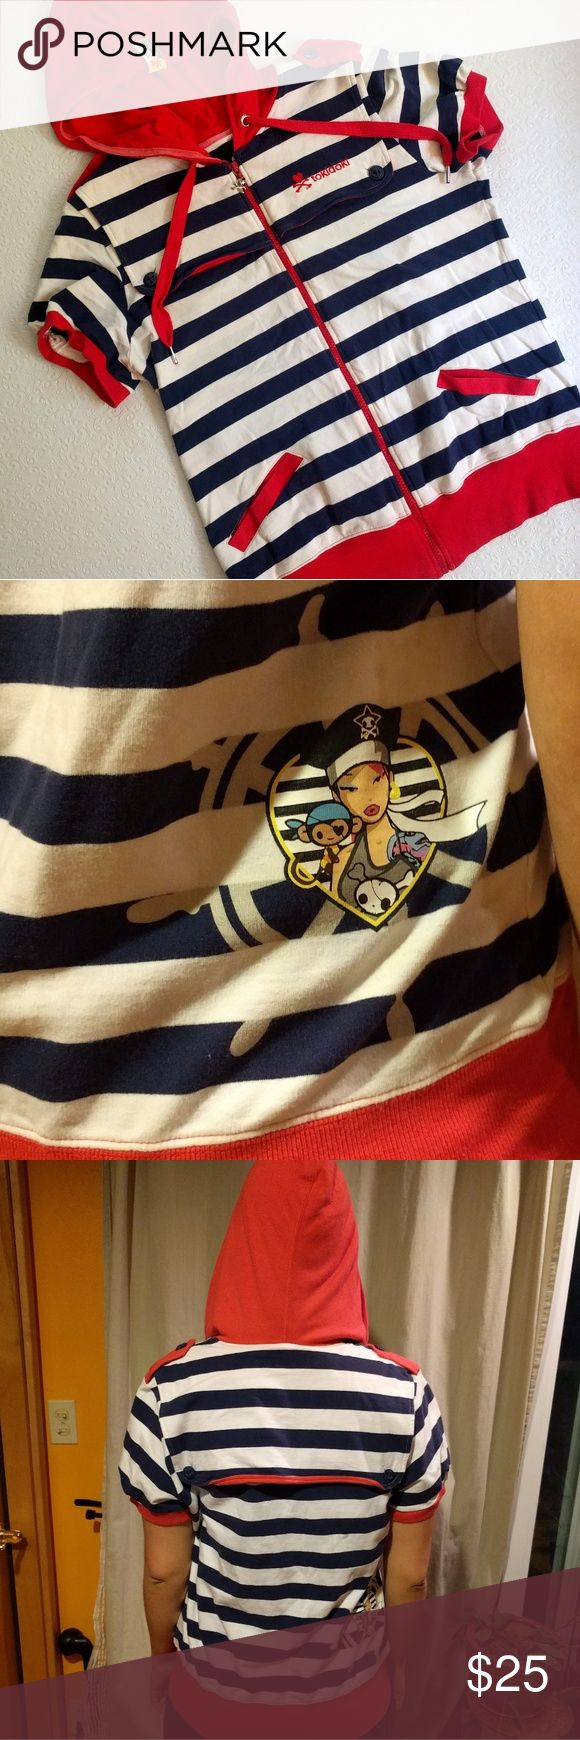 """Tokidoki Short Sleeved Hoodie Sweet little short sleeved nautical hoodie with white and navy stripes and coral hood and accents. Tokidoki character and button flap on back. Great condition. Is a child's XL but could also fit adults. Modeled on 5'9"""" size 8 woman. tokidoki Shirts & Tops Sweatshirts & Hoodies"""